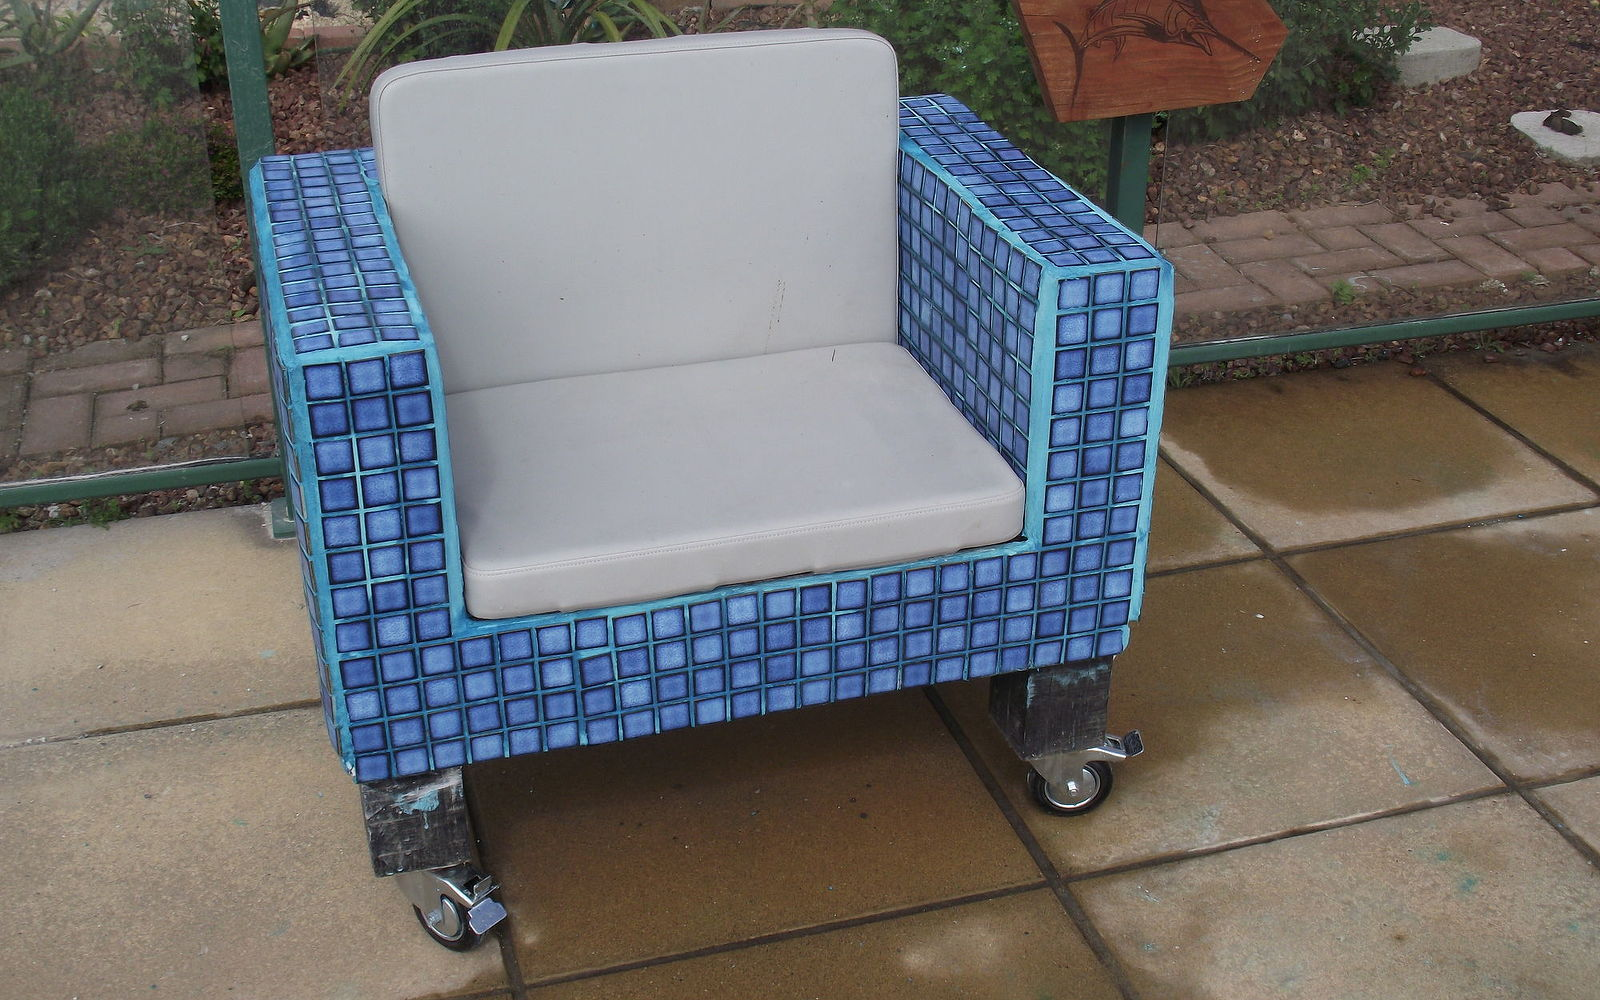 s 12 pool chair ideas we never would have thought of, Craft A Tiled Chair To Lounge In